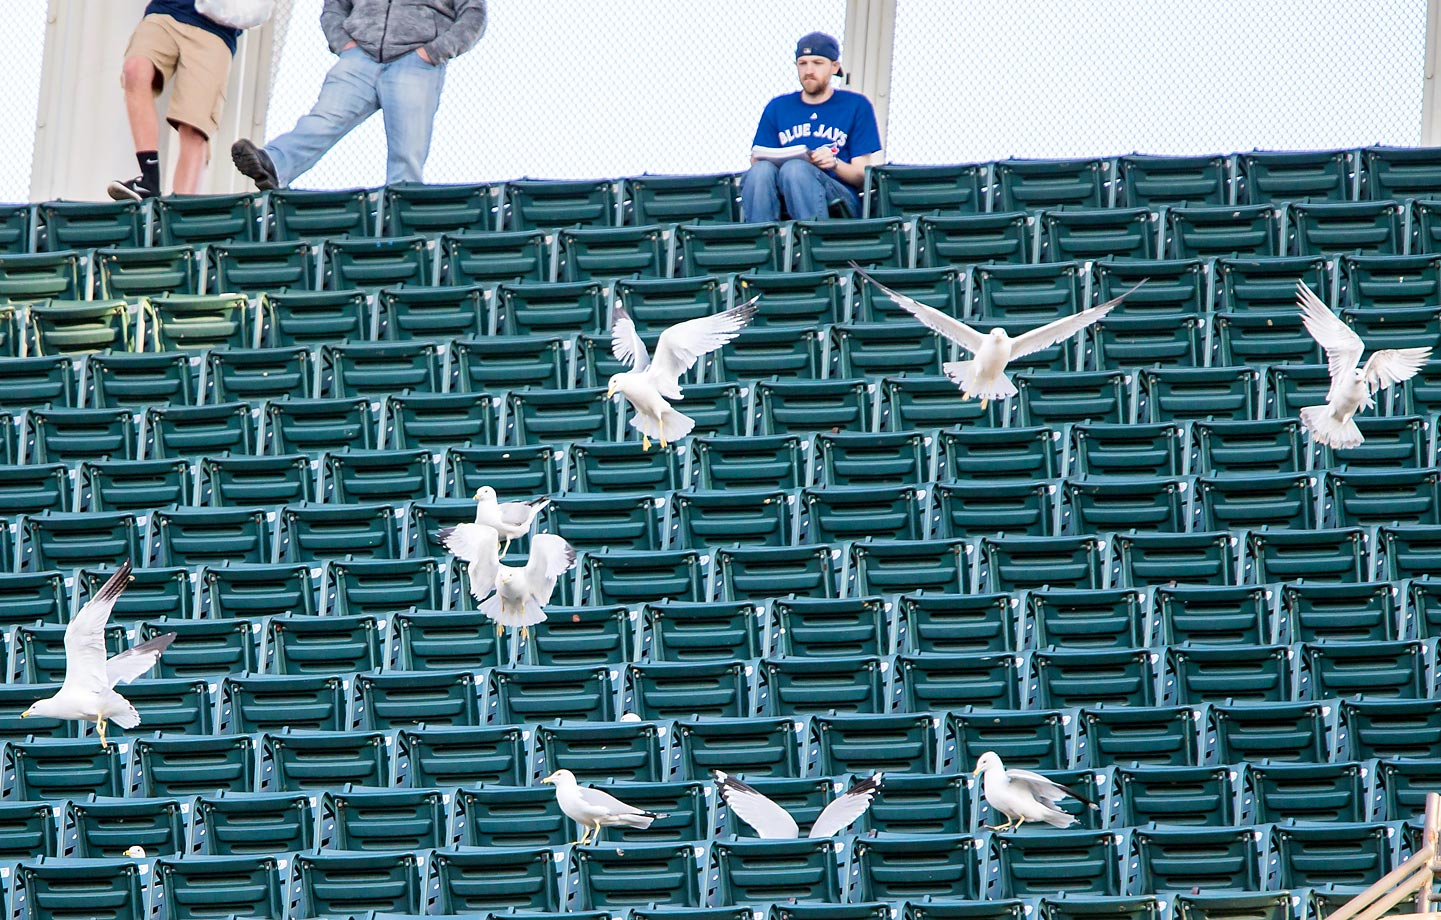 A flock of seagulls apparently scared away all the Blue Jays fans during a game against the Indians.